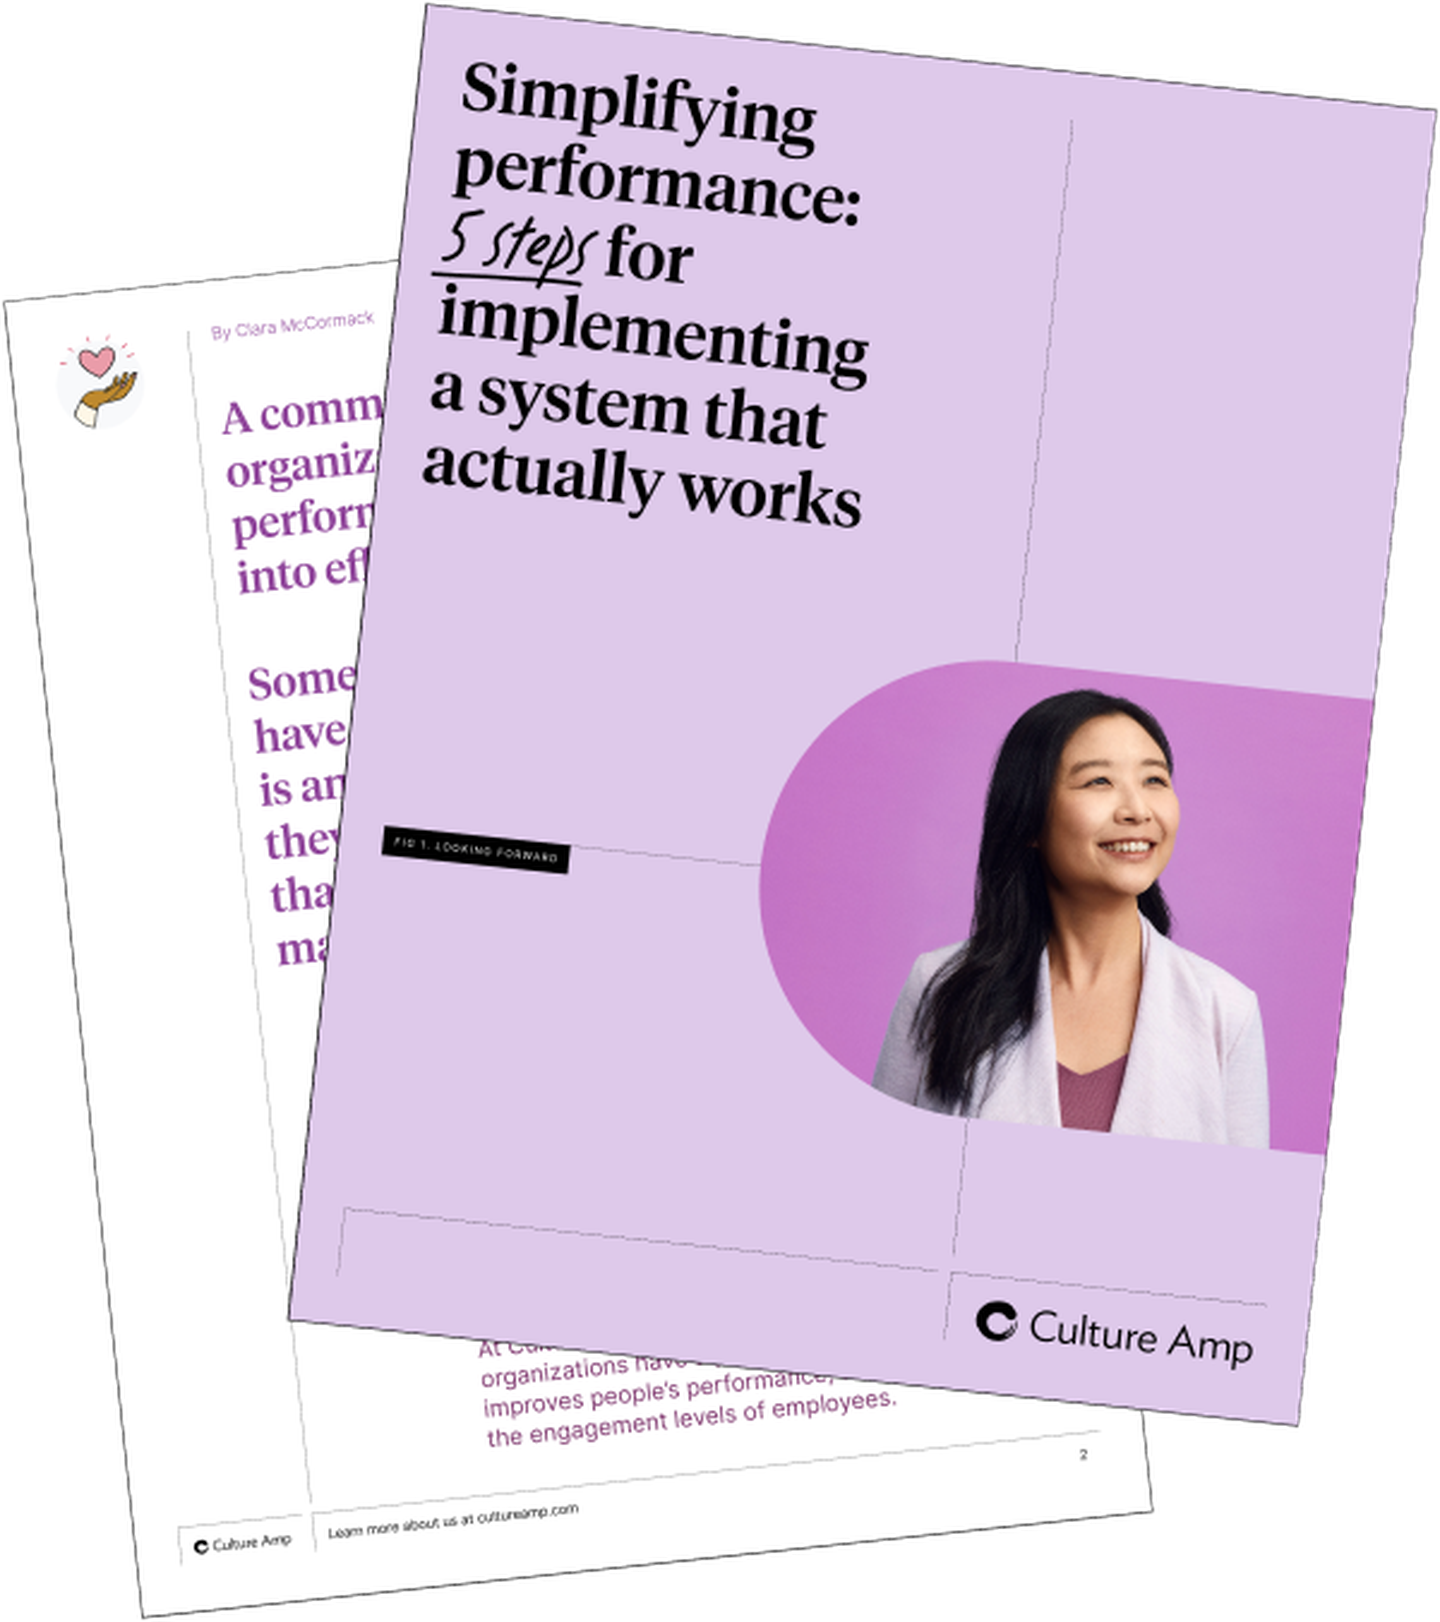 5 steps to simplifying performance management